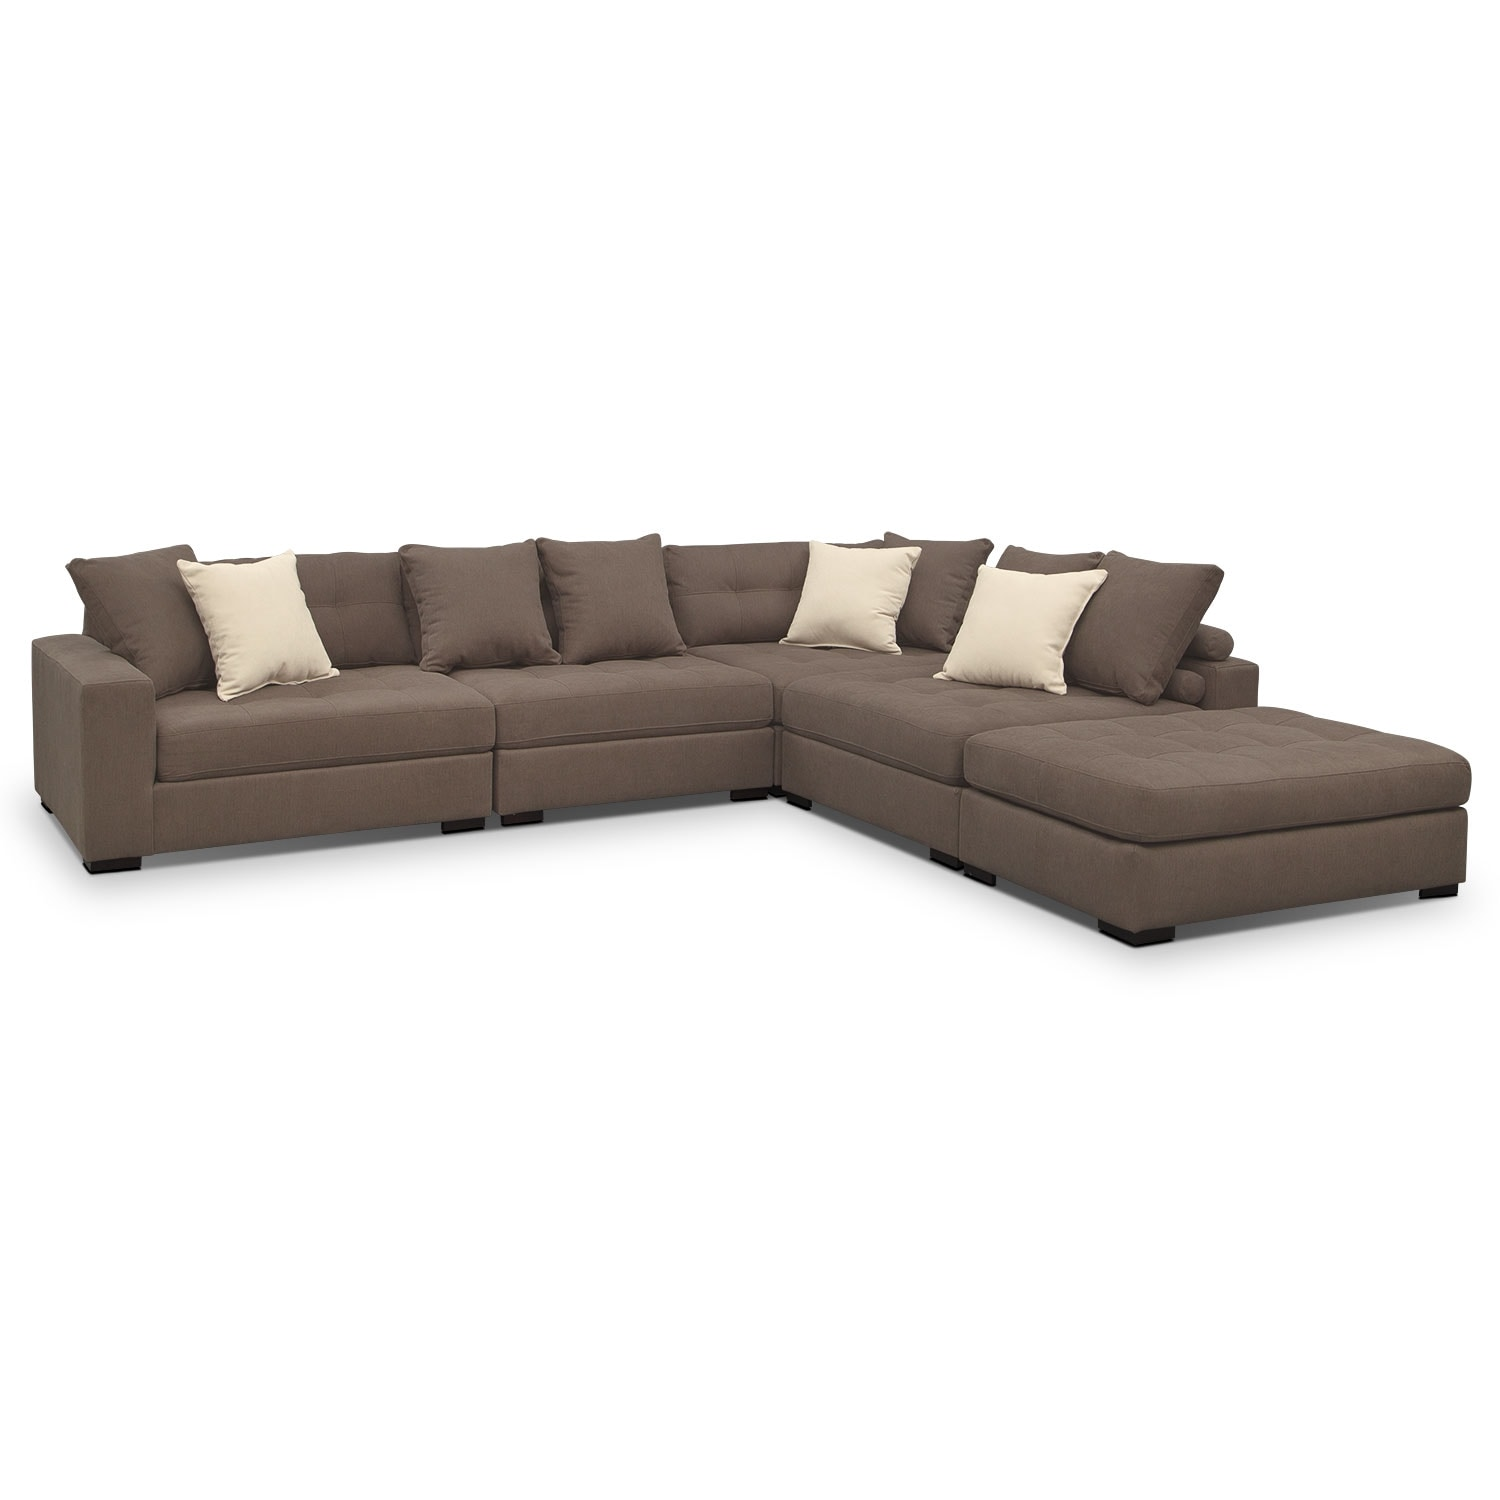 Venti 5-Piece Sectional with Cocktail Ottoman - Mocha